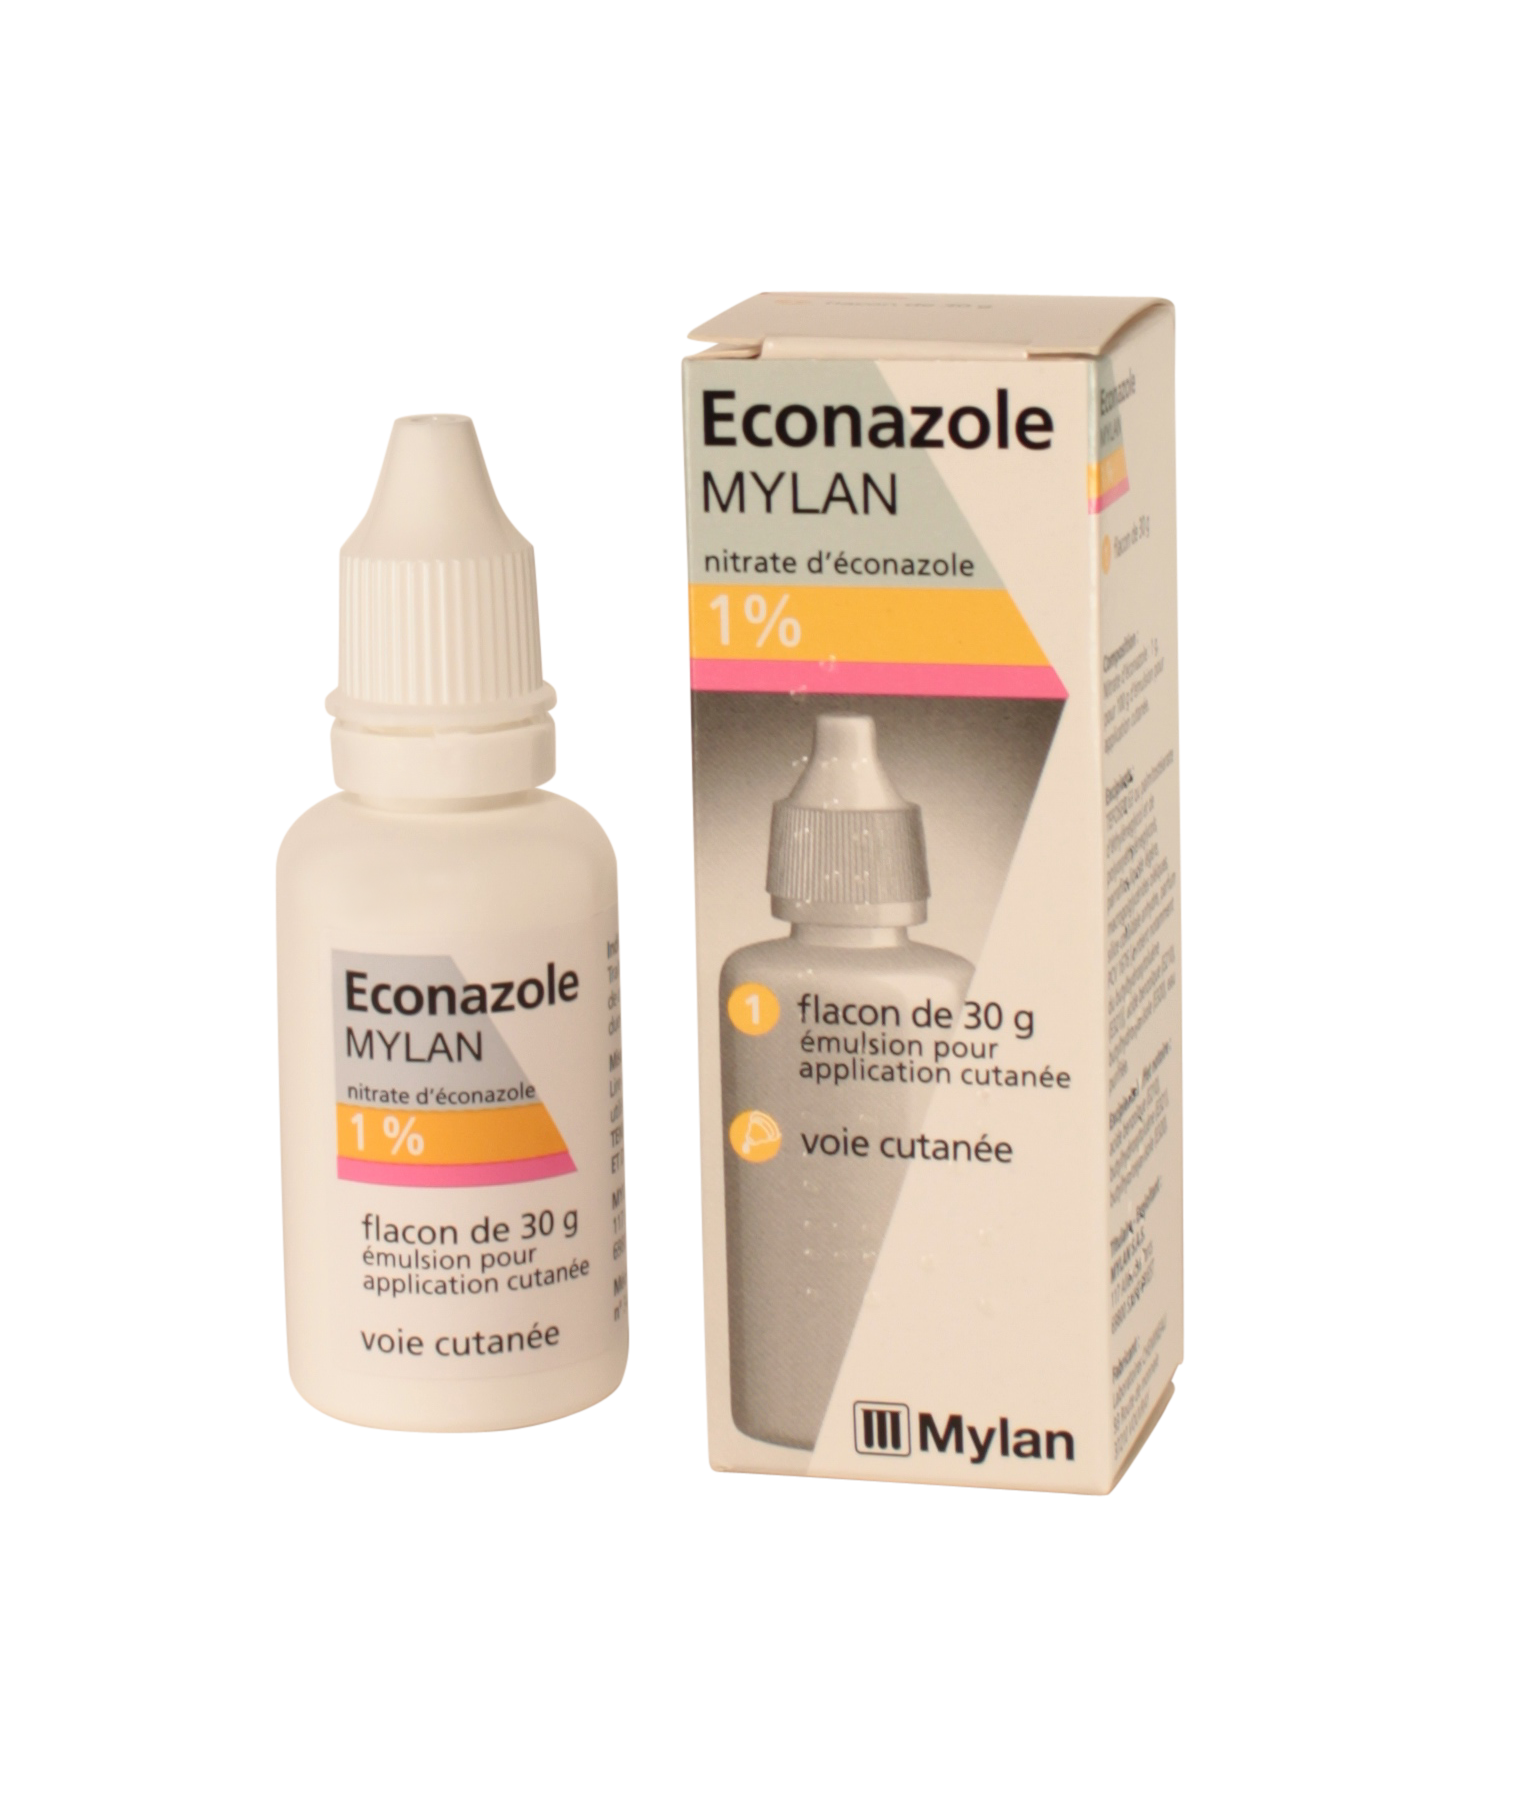 Econazole - definition of econazole by The Free Dictionary